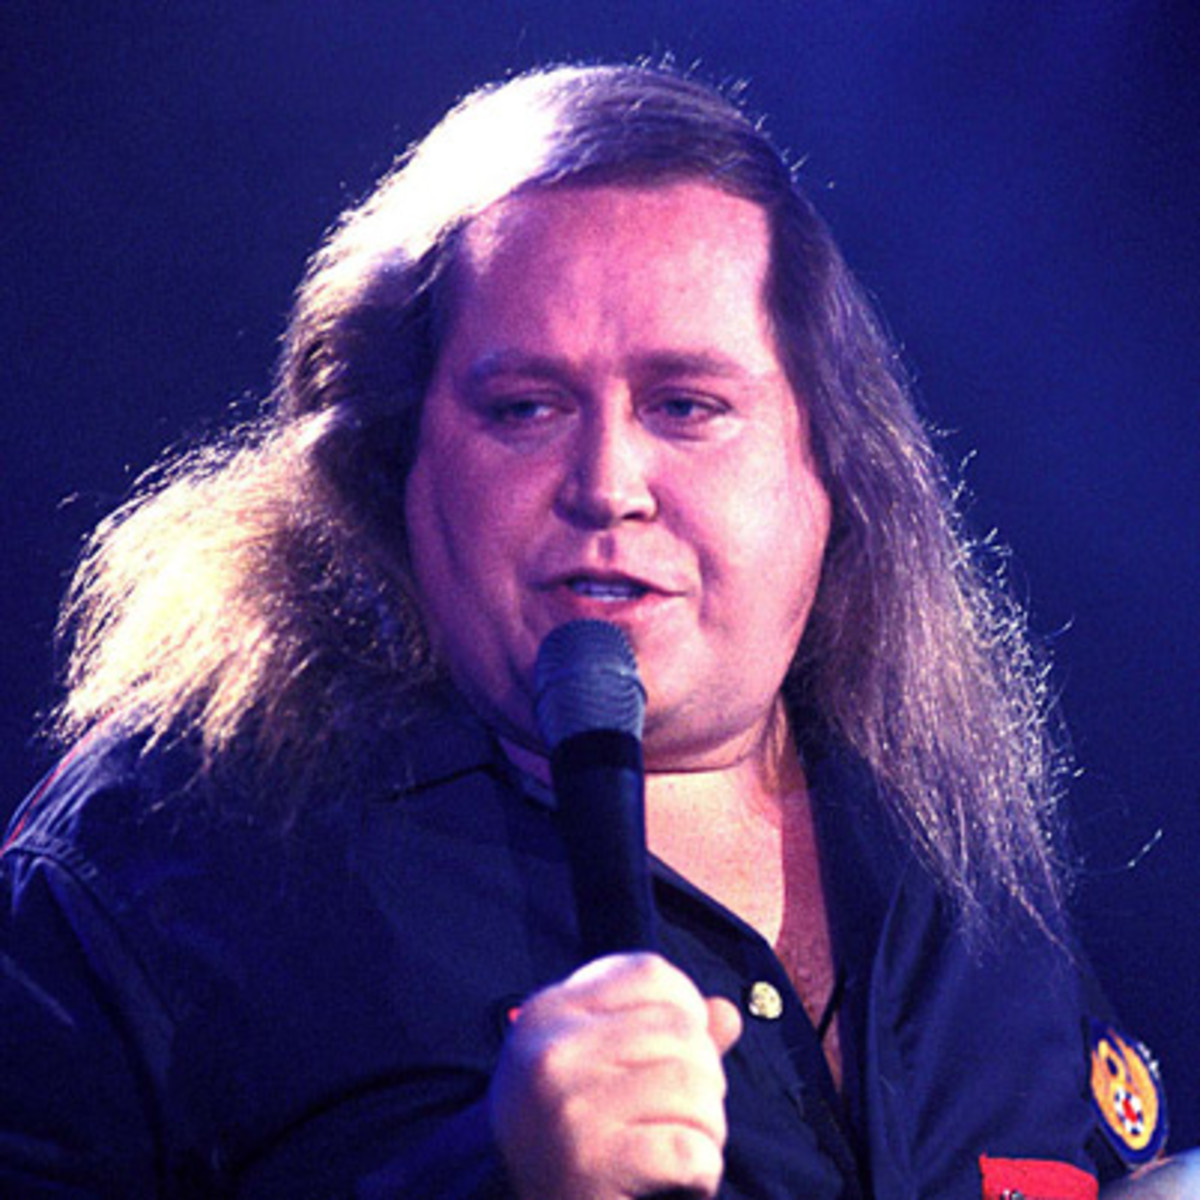 Sam kinison accident scene photos - Sam Kinison Accident Scene Photos 33